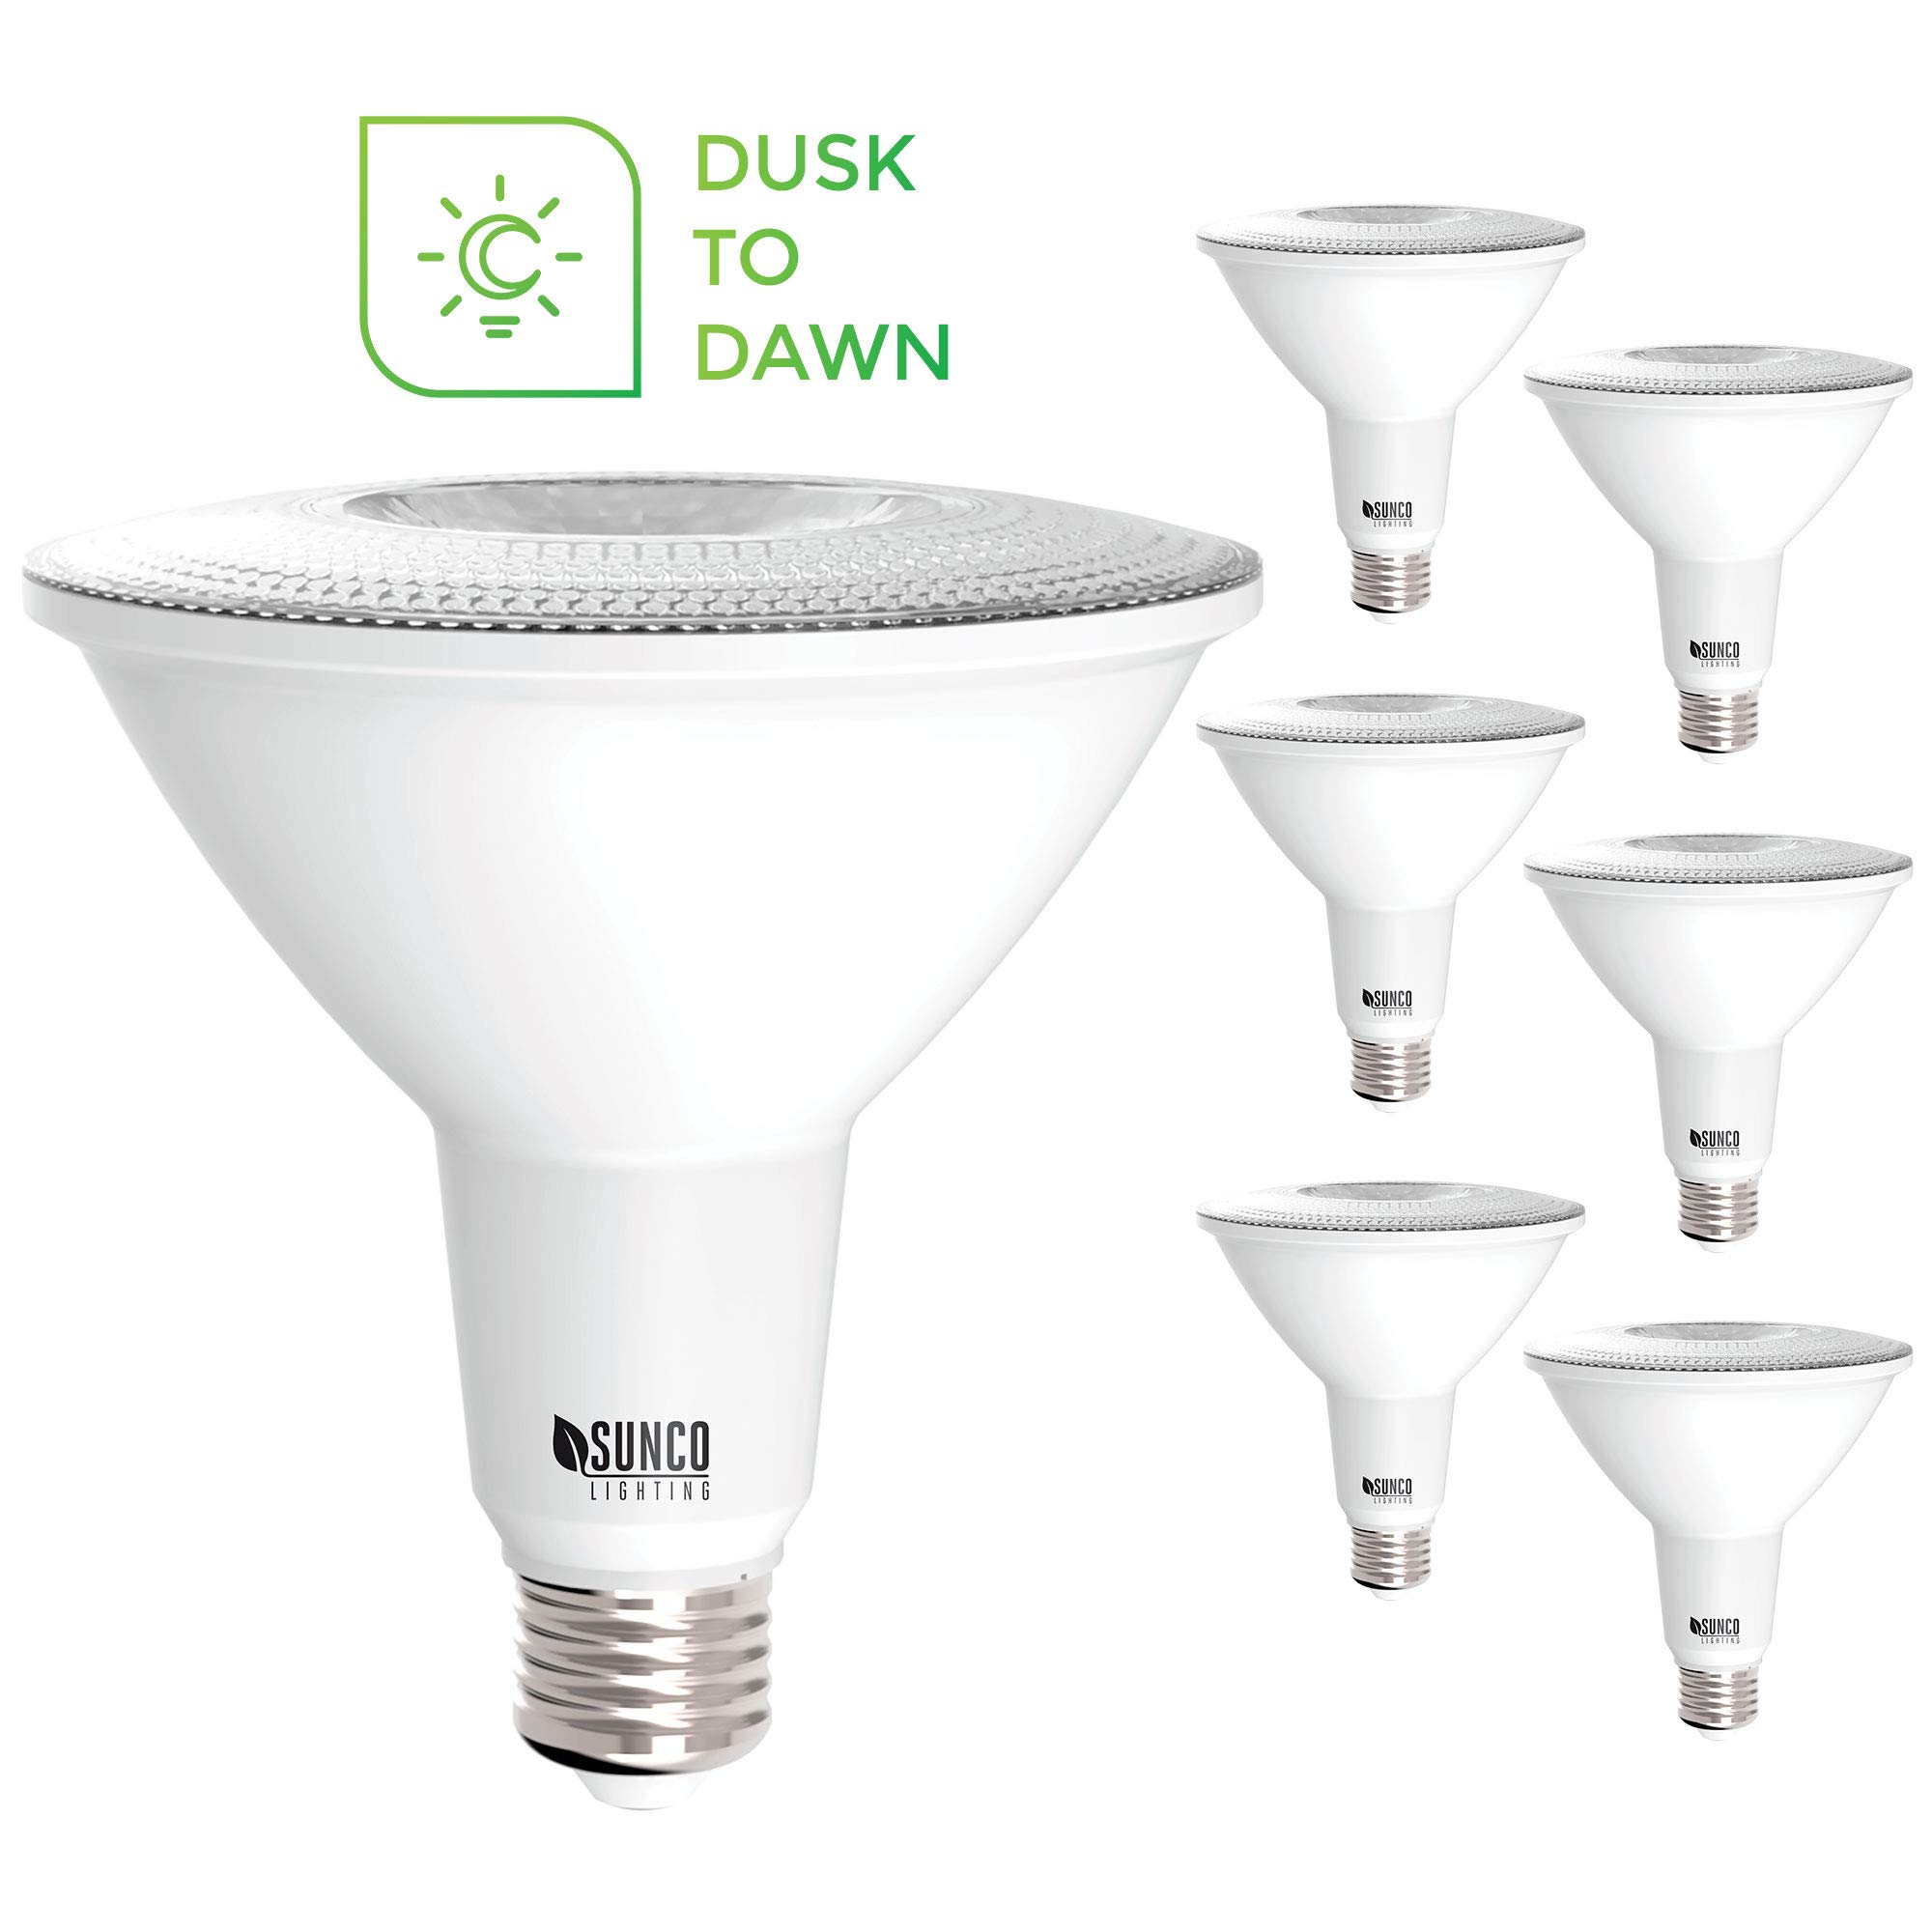 Sunco Lighting 6 Pack PAR38 LED Bulb with Dusk-to-Dawn Photocell Sensor, 15W=120W, 4000K Cool White, 1250 LM, Auto On/Off, Security Flood Light Indoor/Outdoor - UL